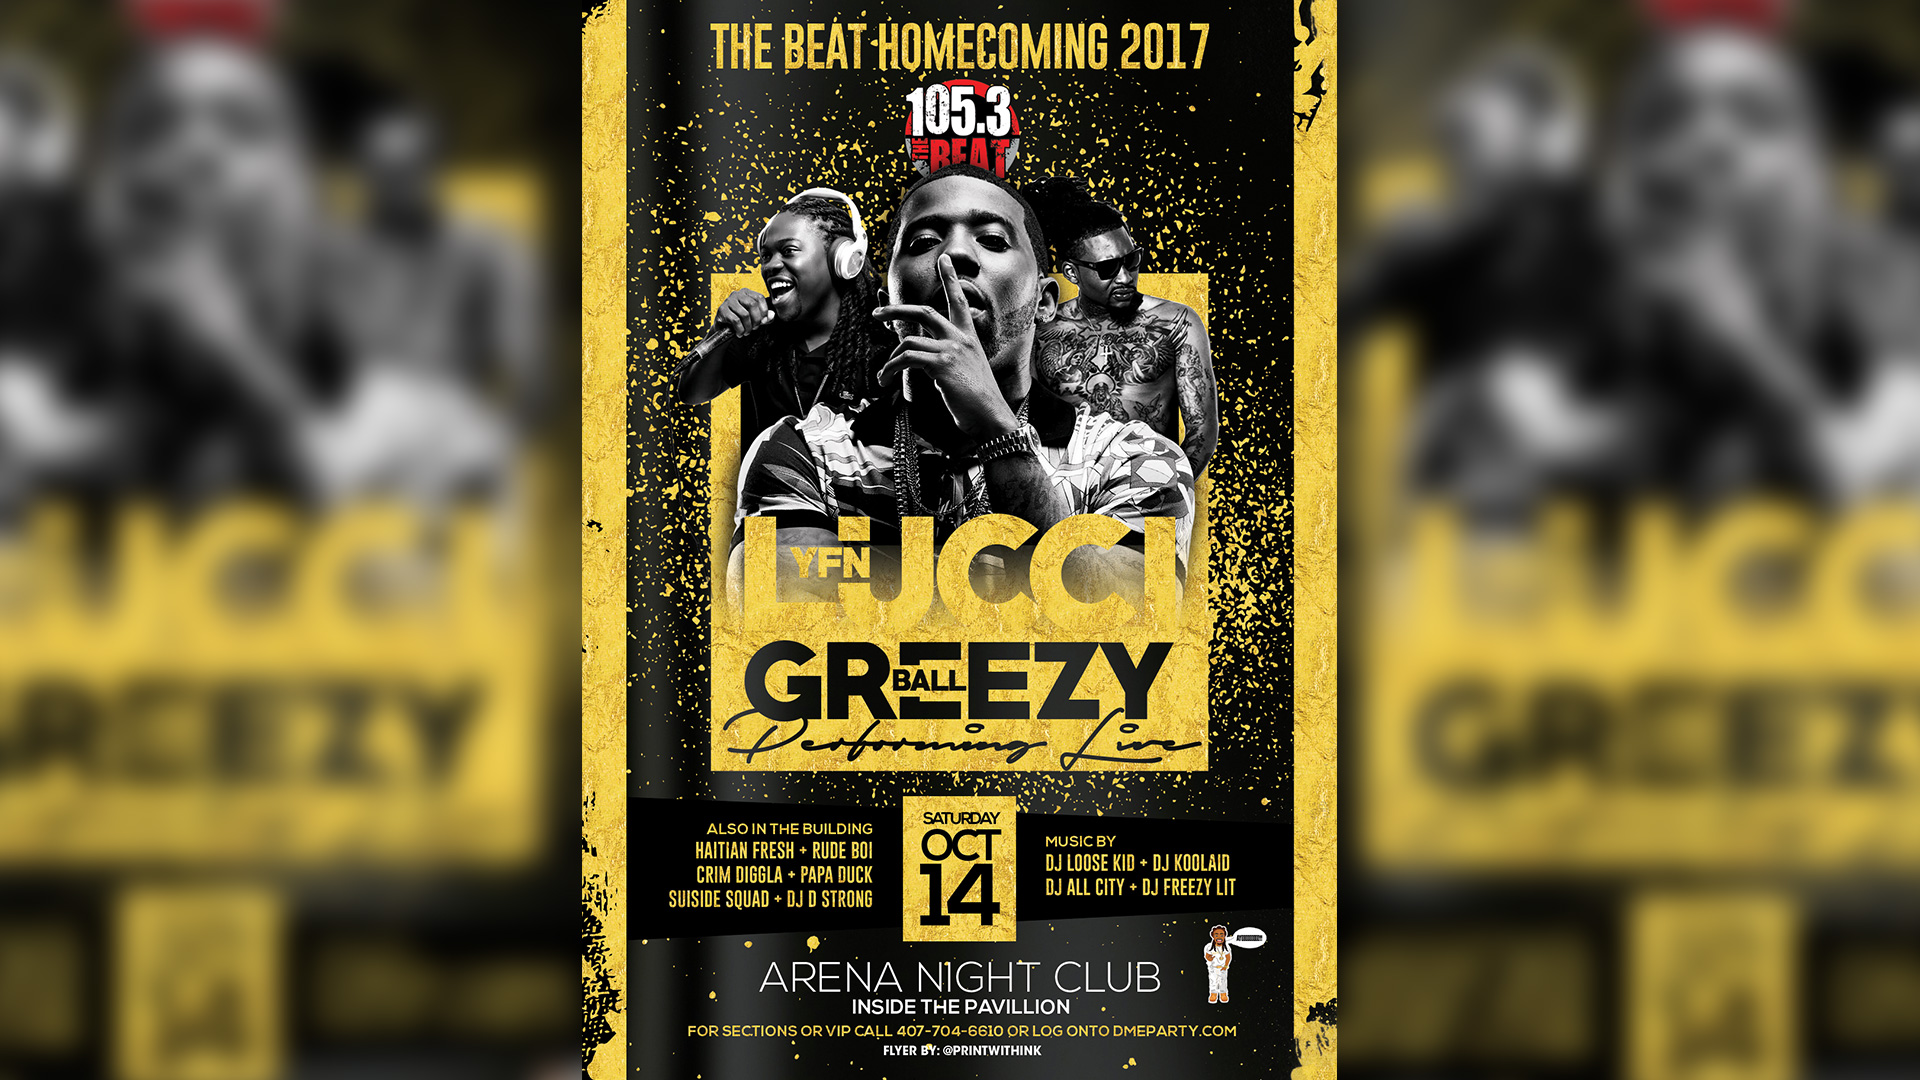 the beat homecoming 2017